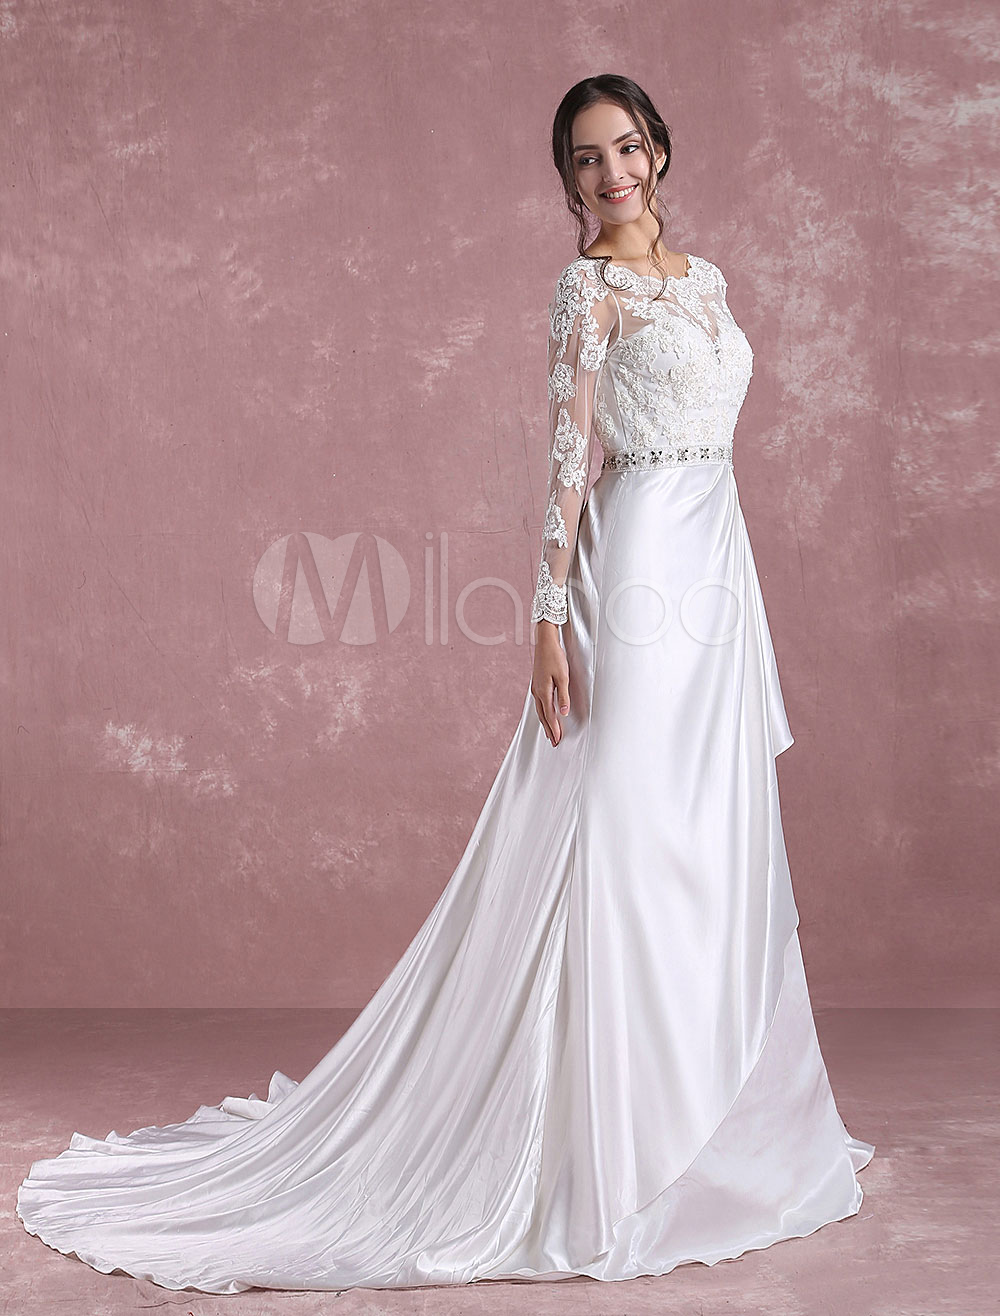 Lace Wedding Dress Ivory Long Sleeve Bridal Backless Satin Sweetheart Lique Beading Sash A Line